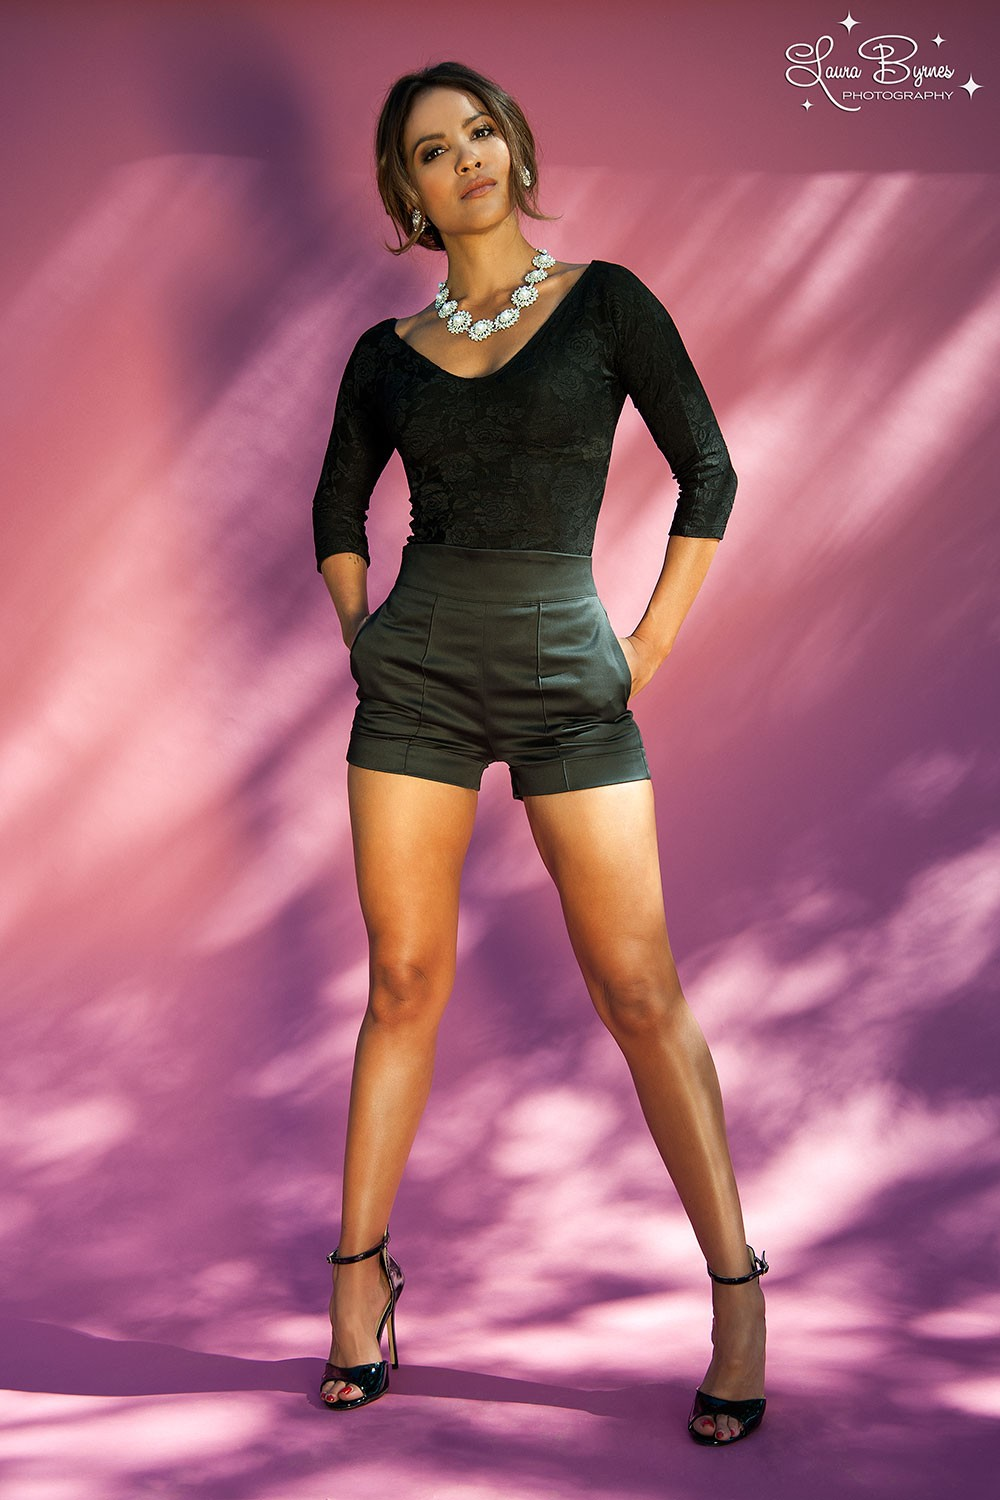 Lesley-Ann Brandt - Pinup Girl Clothing Photoshoot - Cali High Waisted Shorts